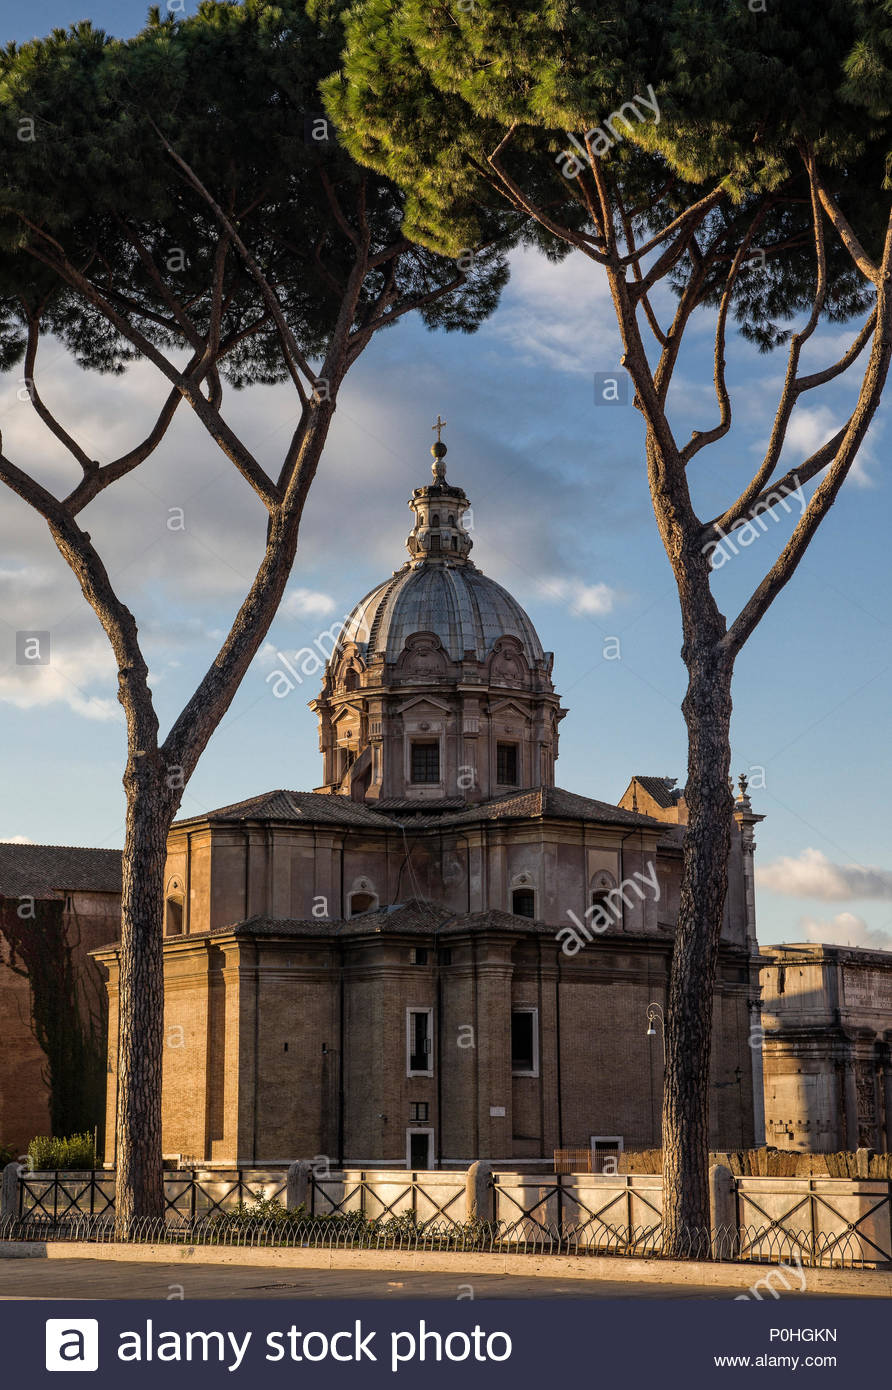 Chiesa di Santa Martina e Luca situated between the Roman Forum and the Forum of Caesar, Rome, Italy. - Stock Image